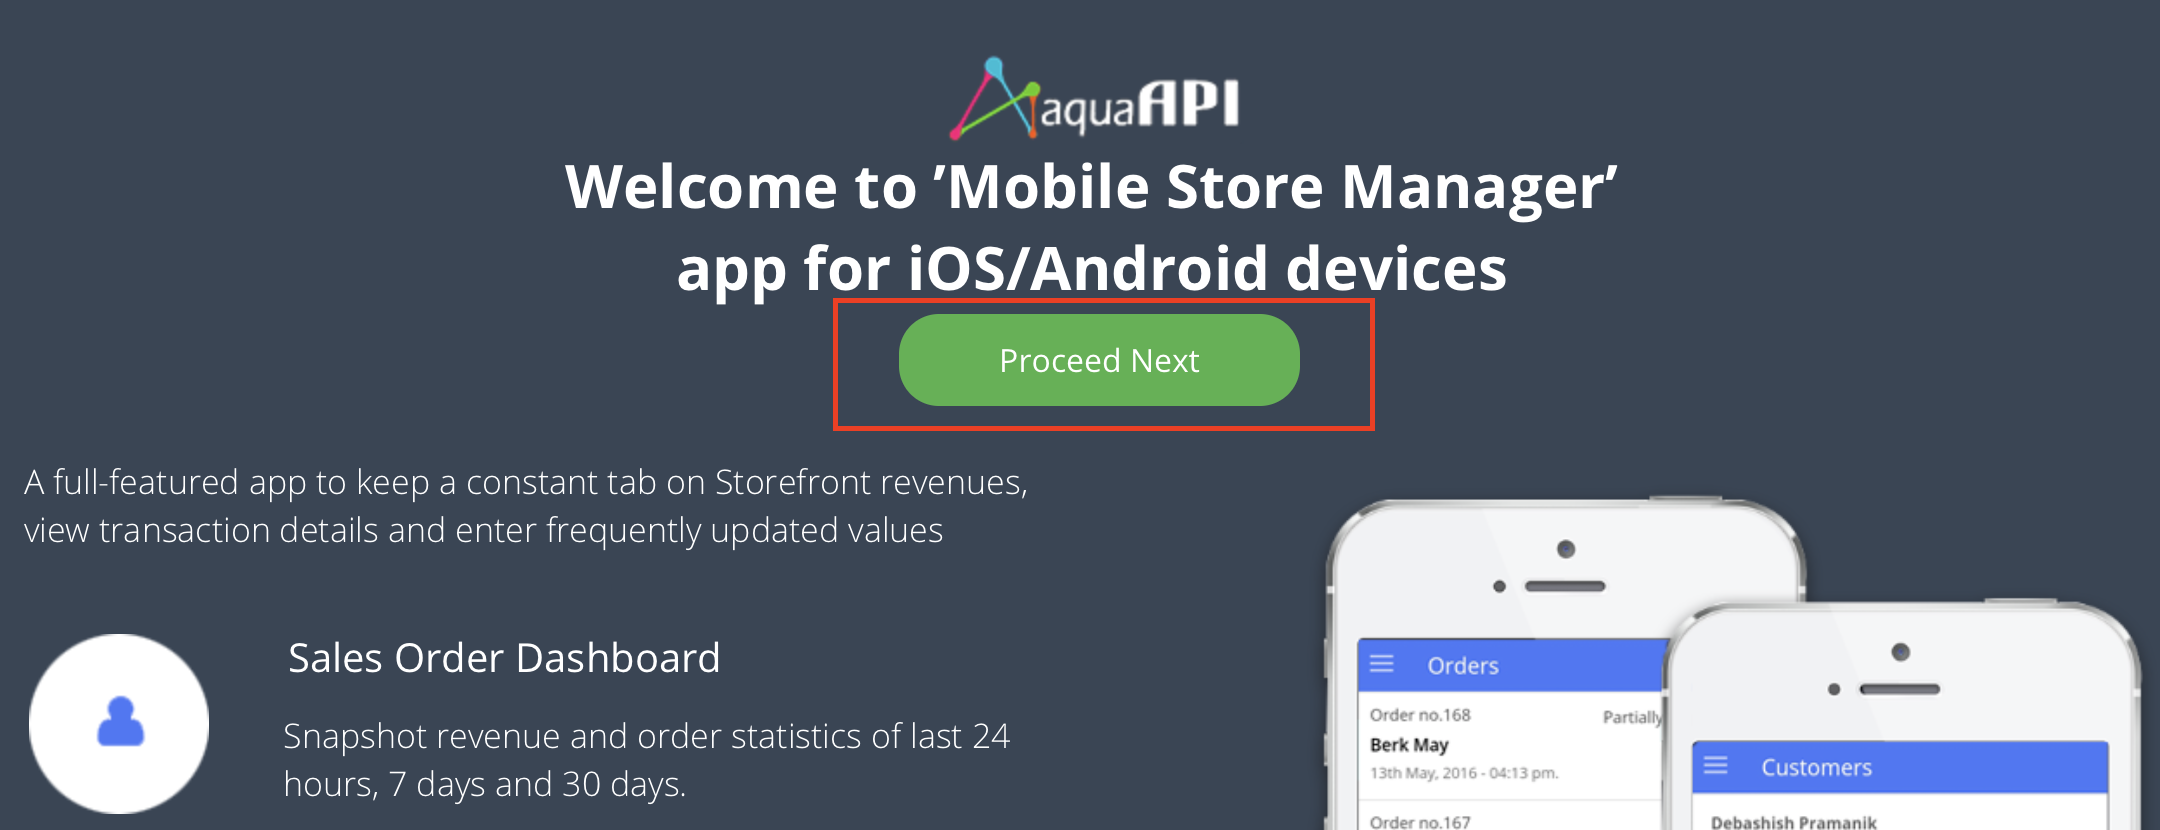 Mobile Store Manager by AquaAPI